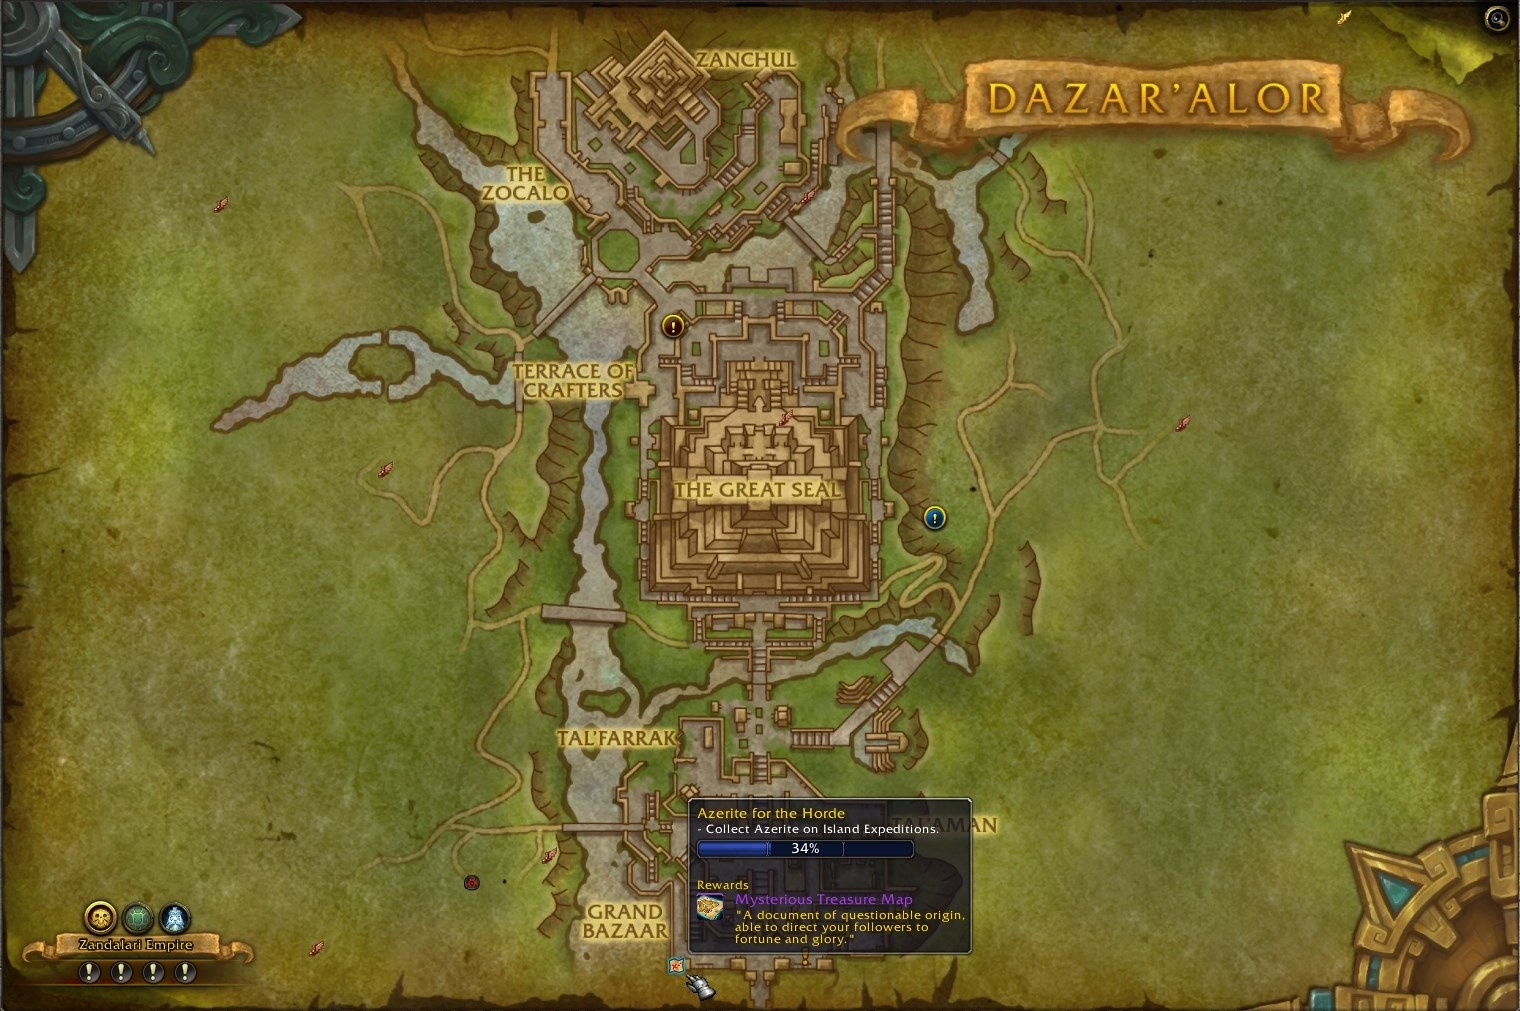 Island Expeditions in Battle for Azeroth - Guides - Wowhead